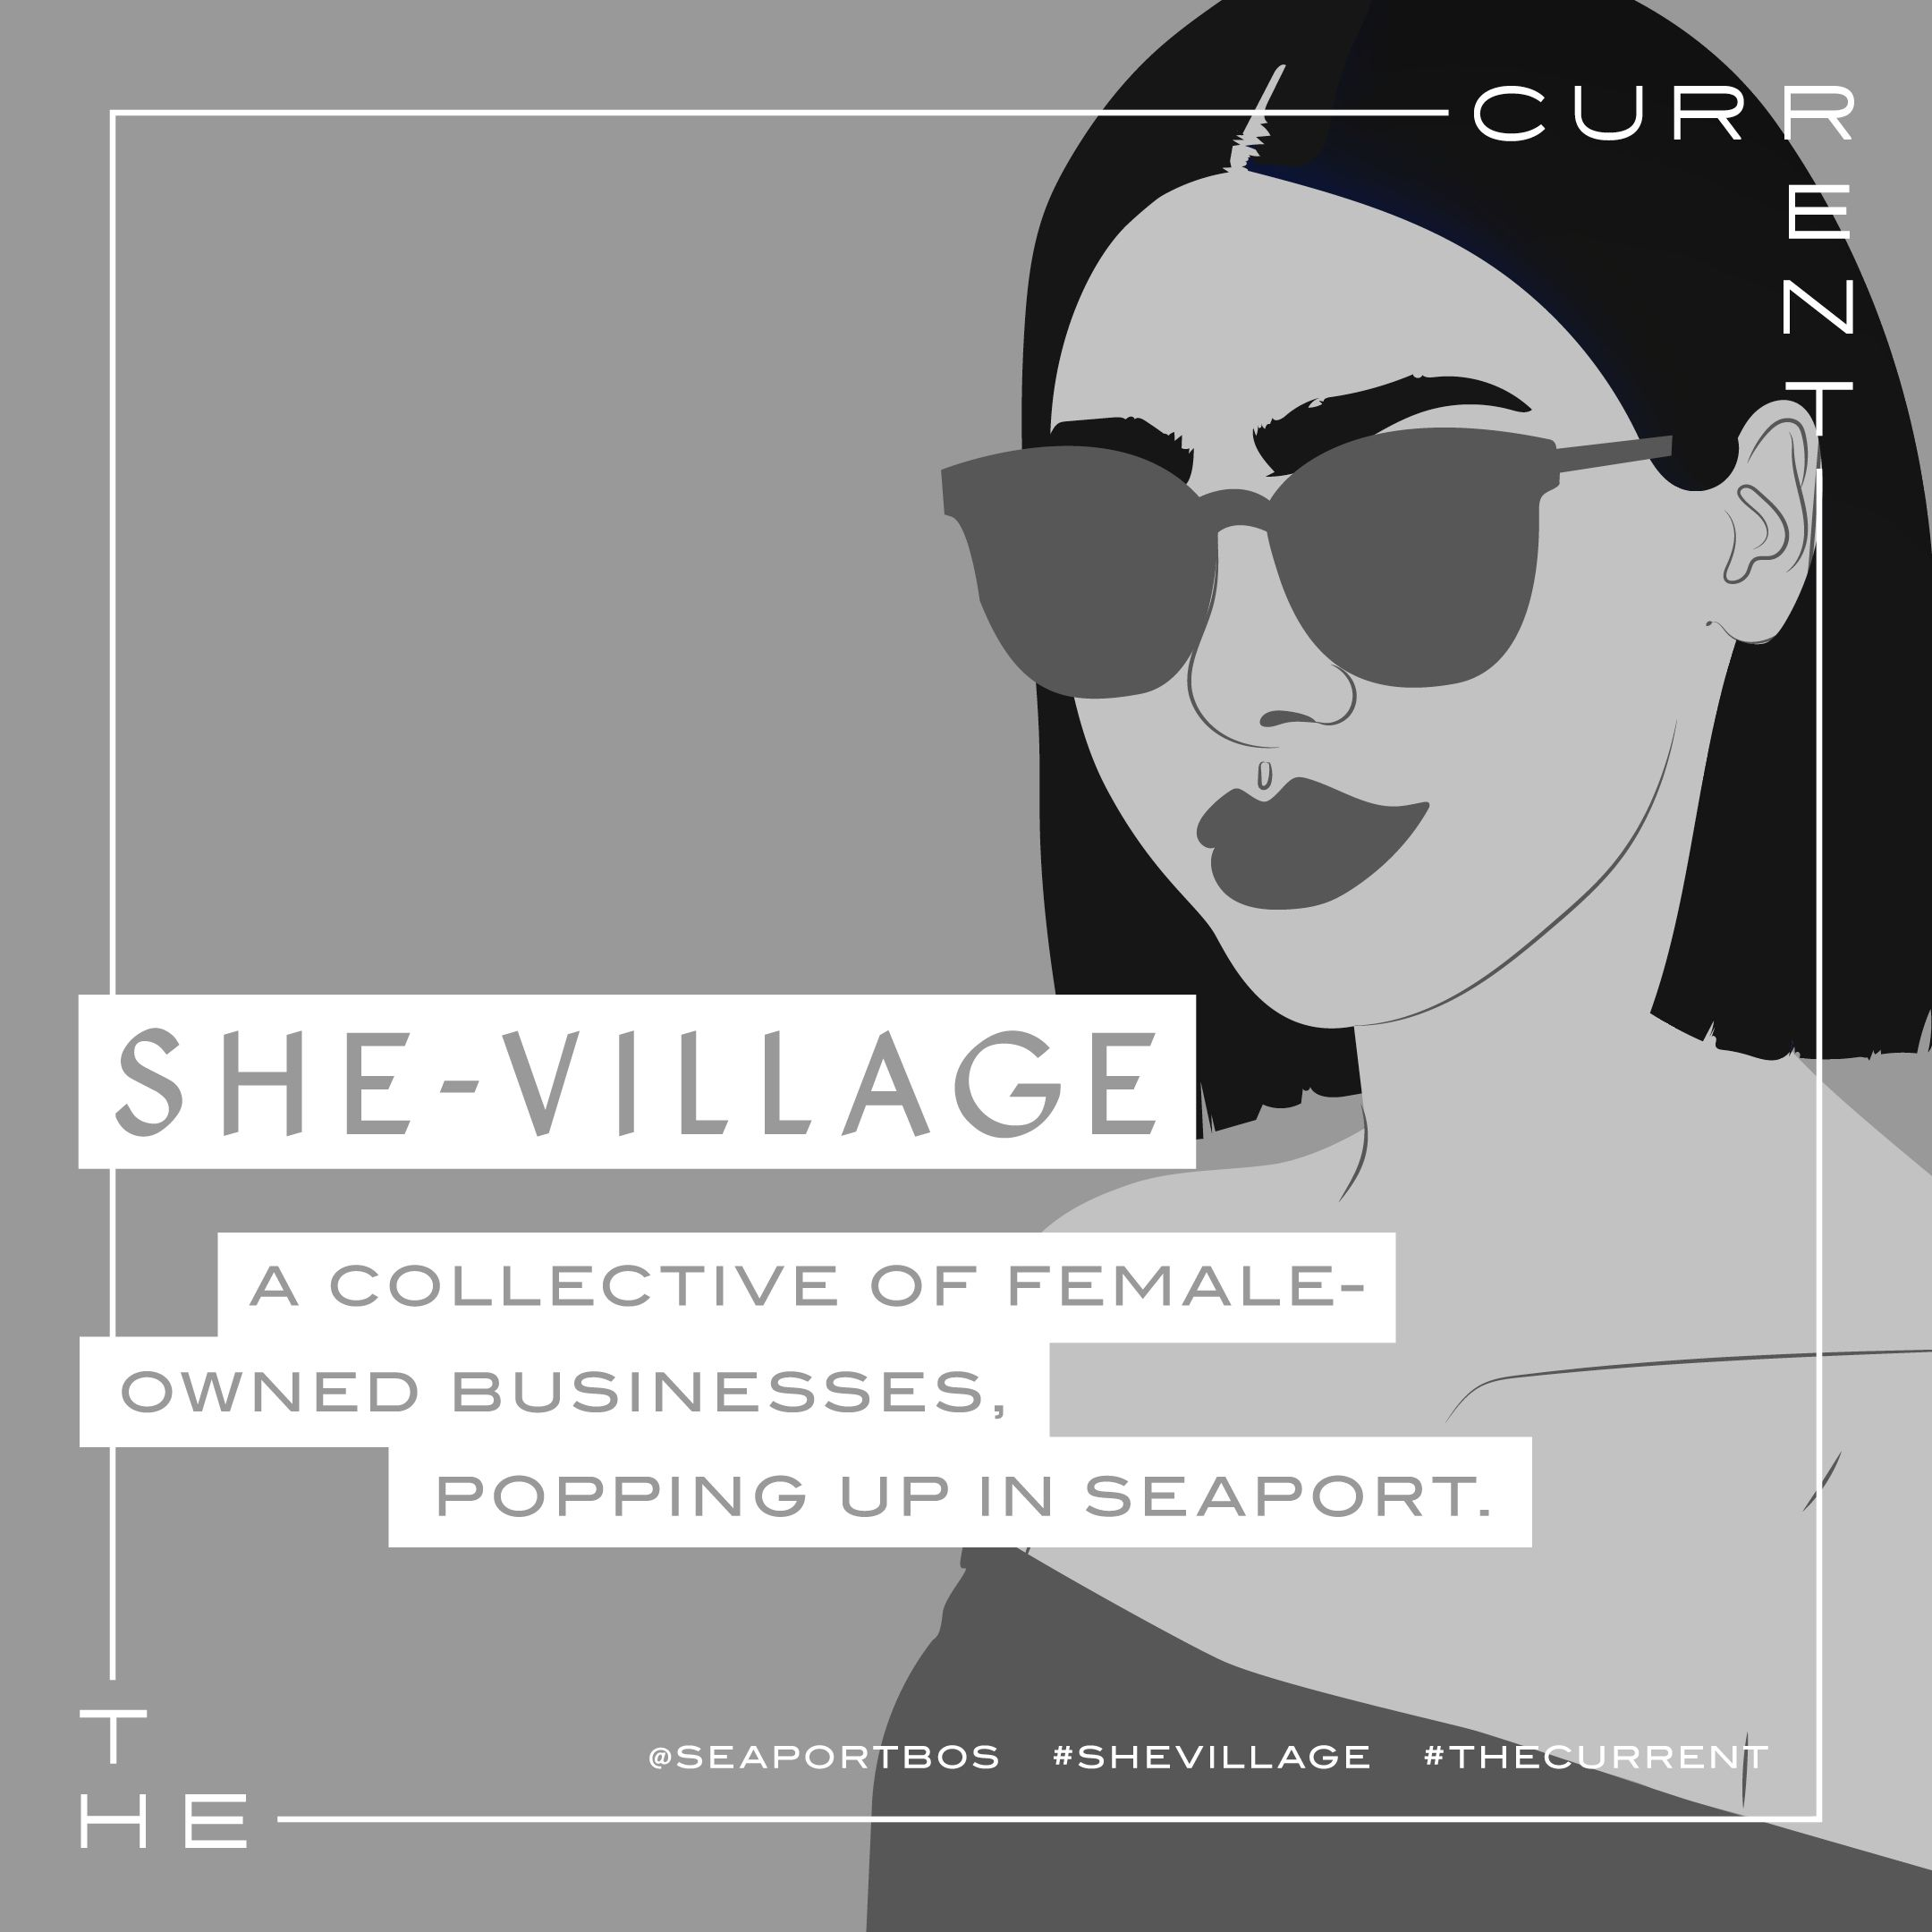 An advertisement for Seaport's The Current, a pop-up retail space, highlights the current occupants: She-Village, a collective of female-owned businesses.